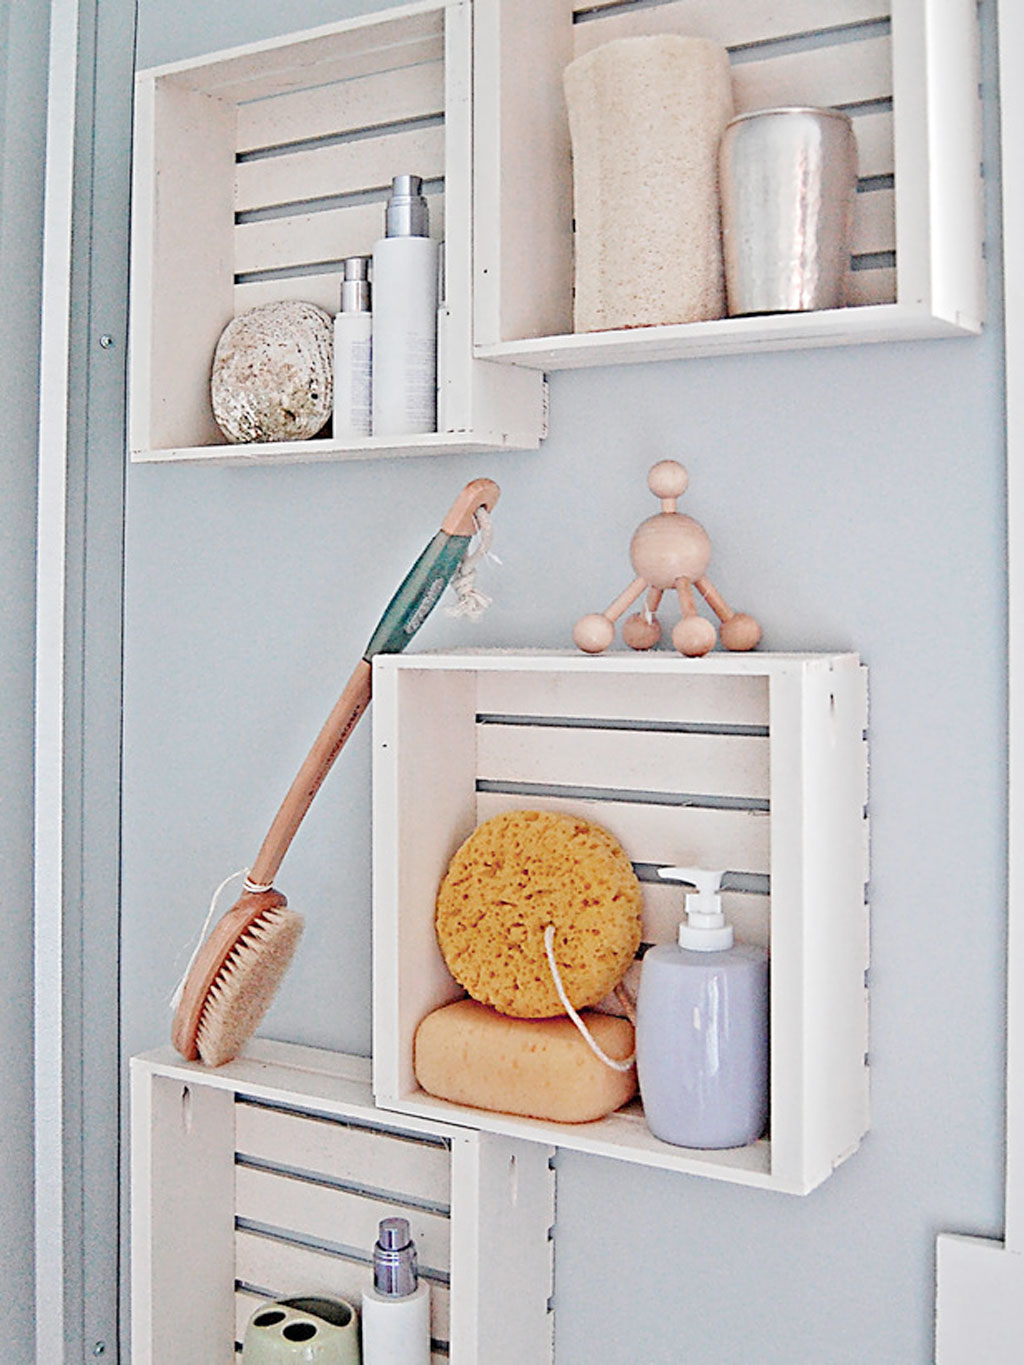 Small Bathroom Towel Storage Ideas Best Hanging - Bathroom wall towel storage for small bathroom ideas